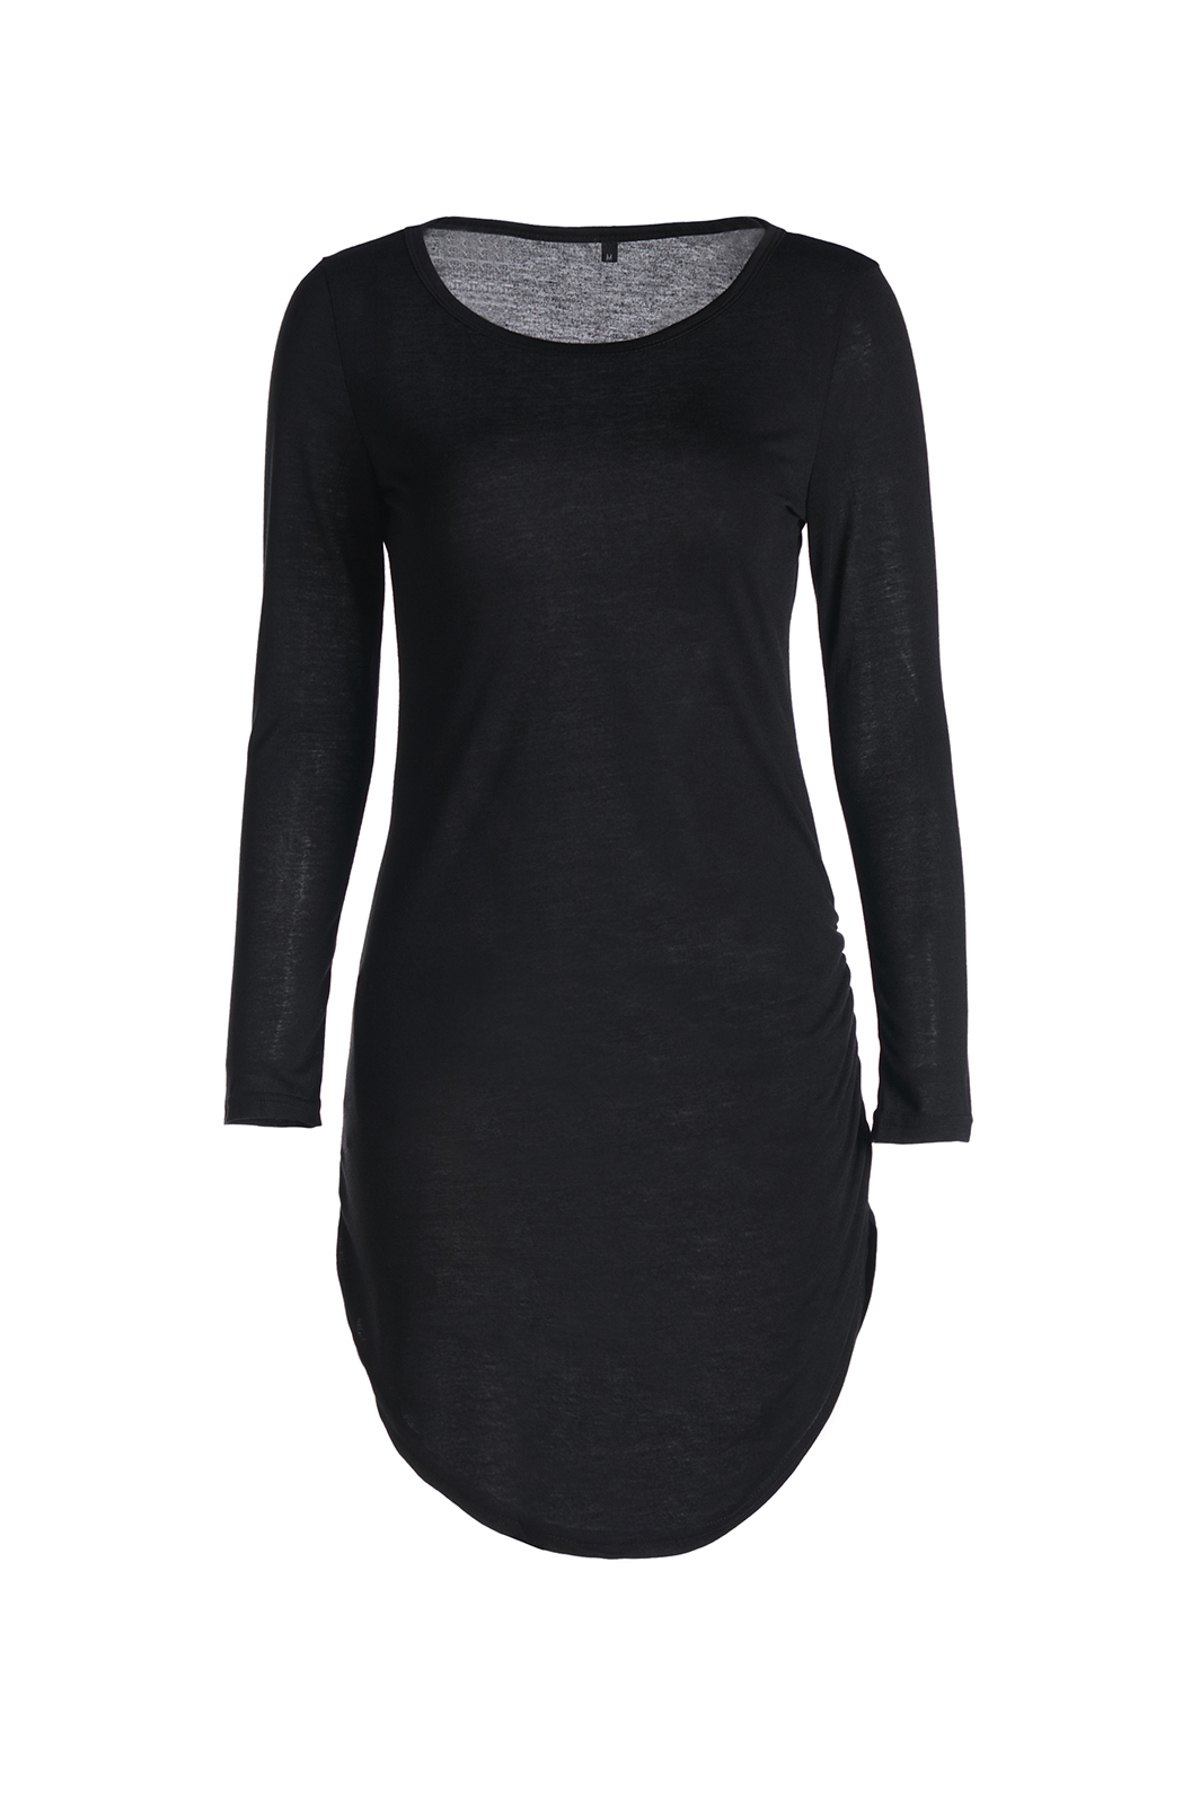 Stylish Women's Slash Neck 3/4 Sleeve Bodycon Dress - BLACK M